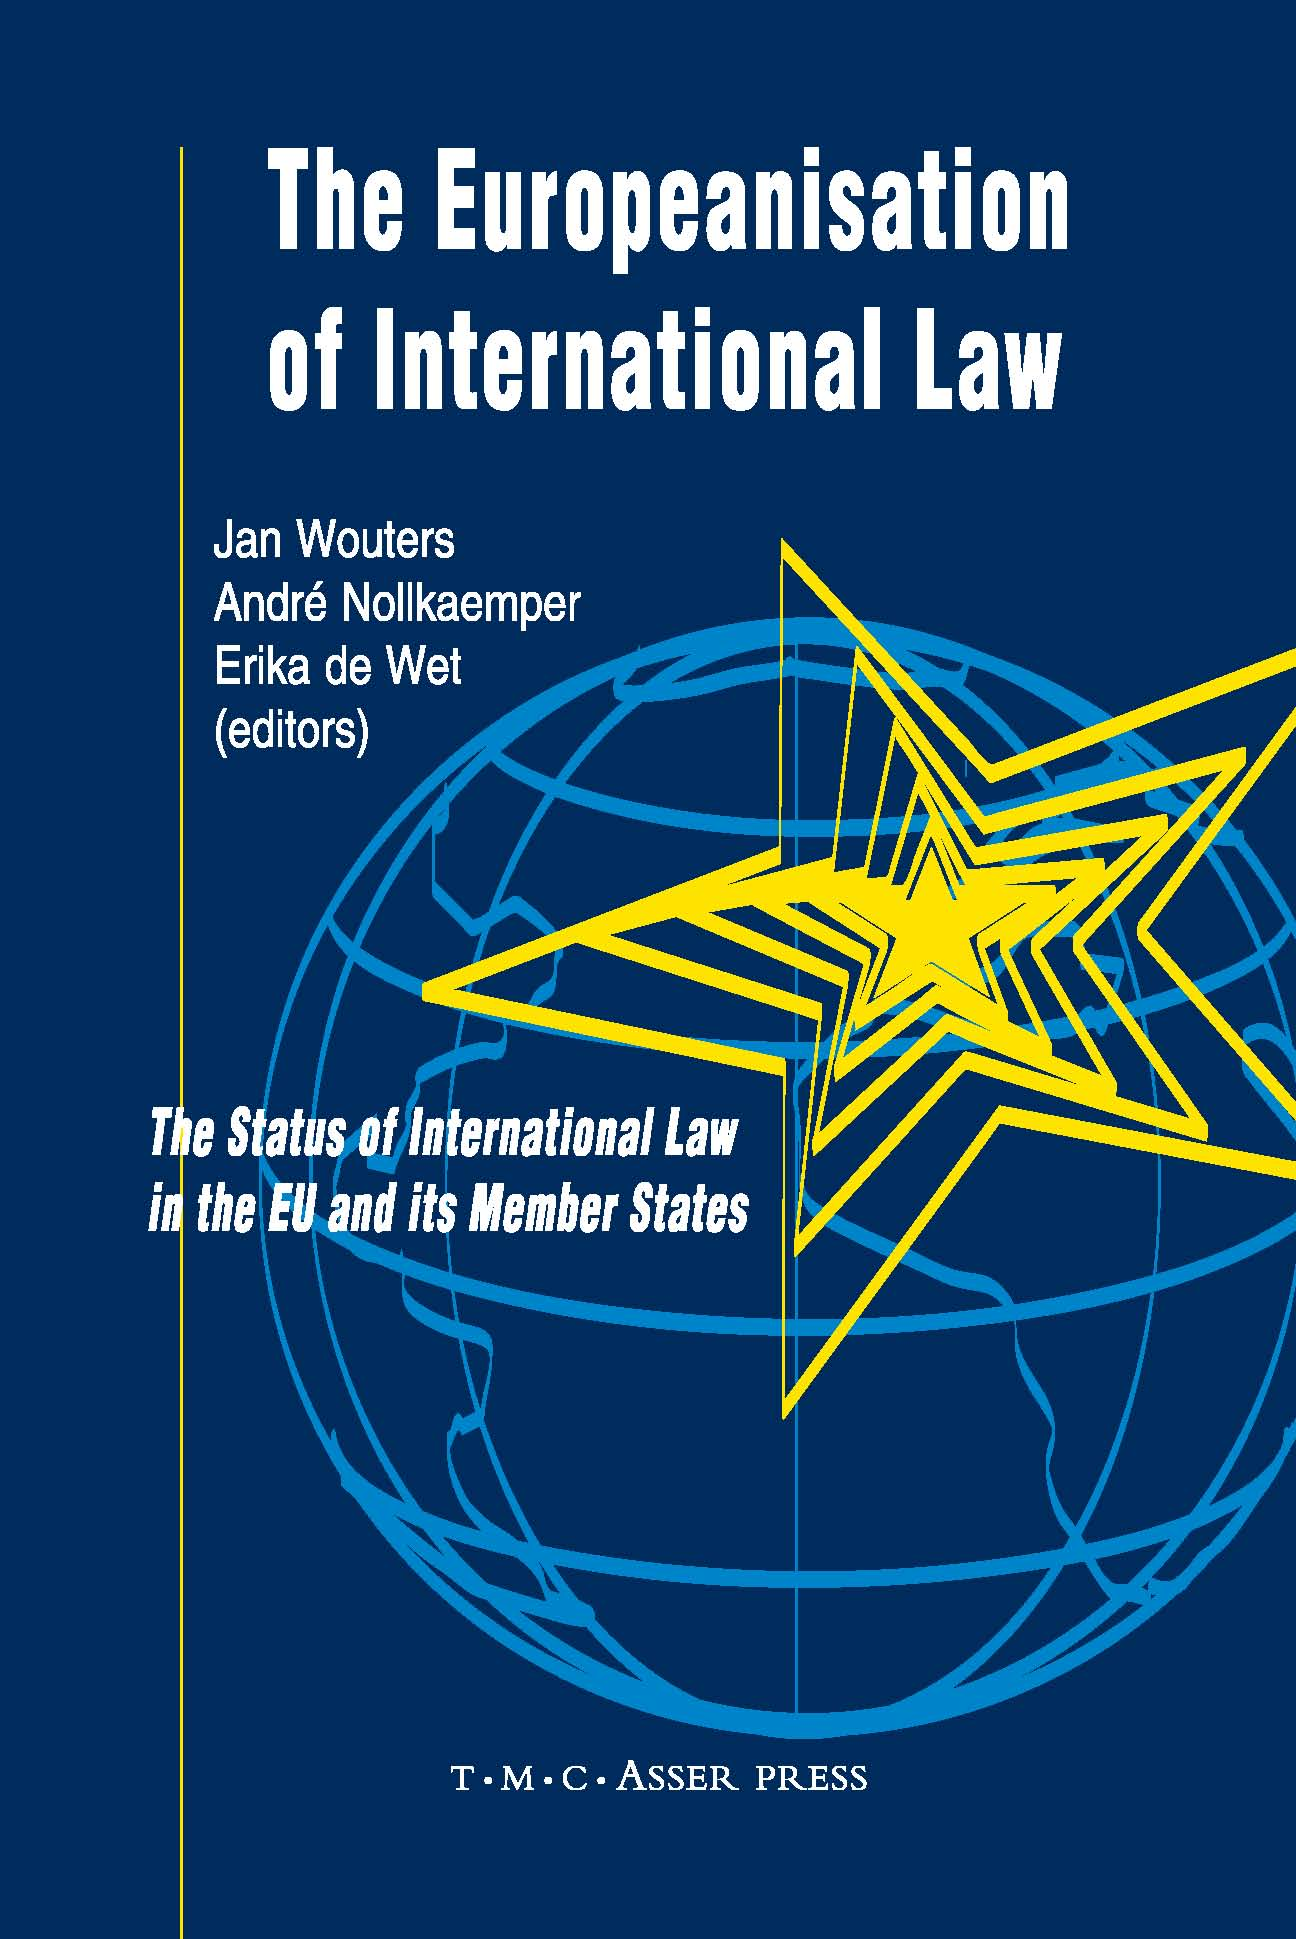 The Europeanisation of International Law - The Status of International Law in the EU and its Member States